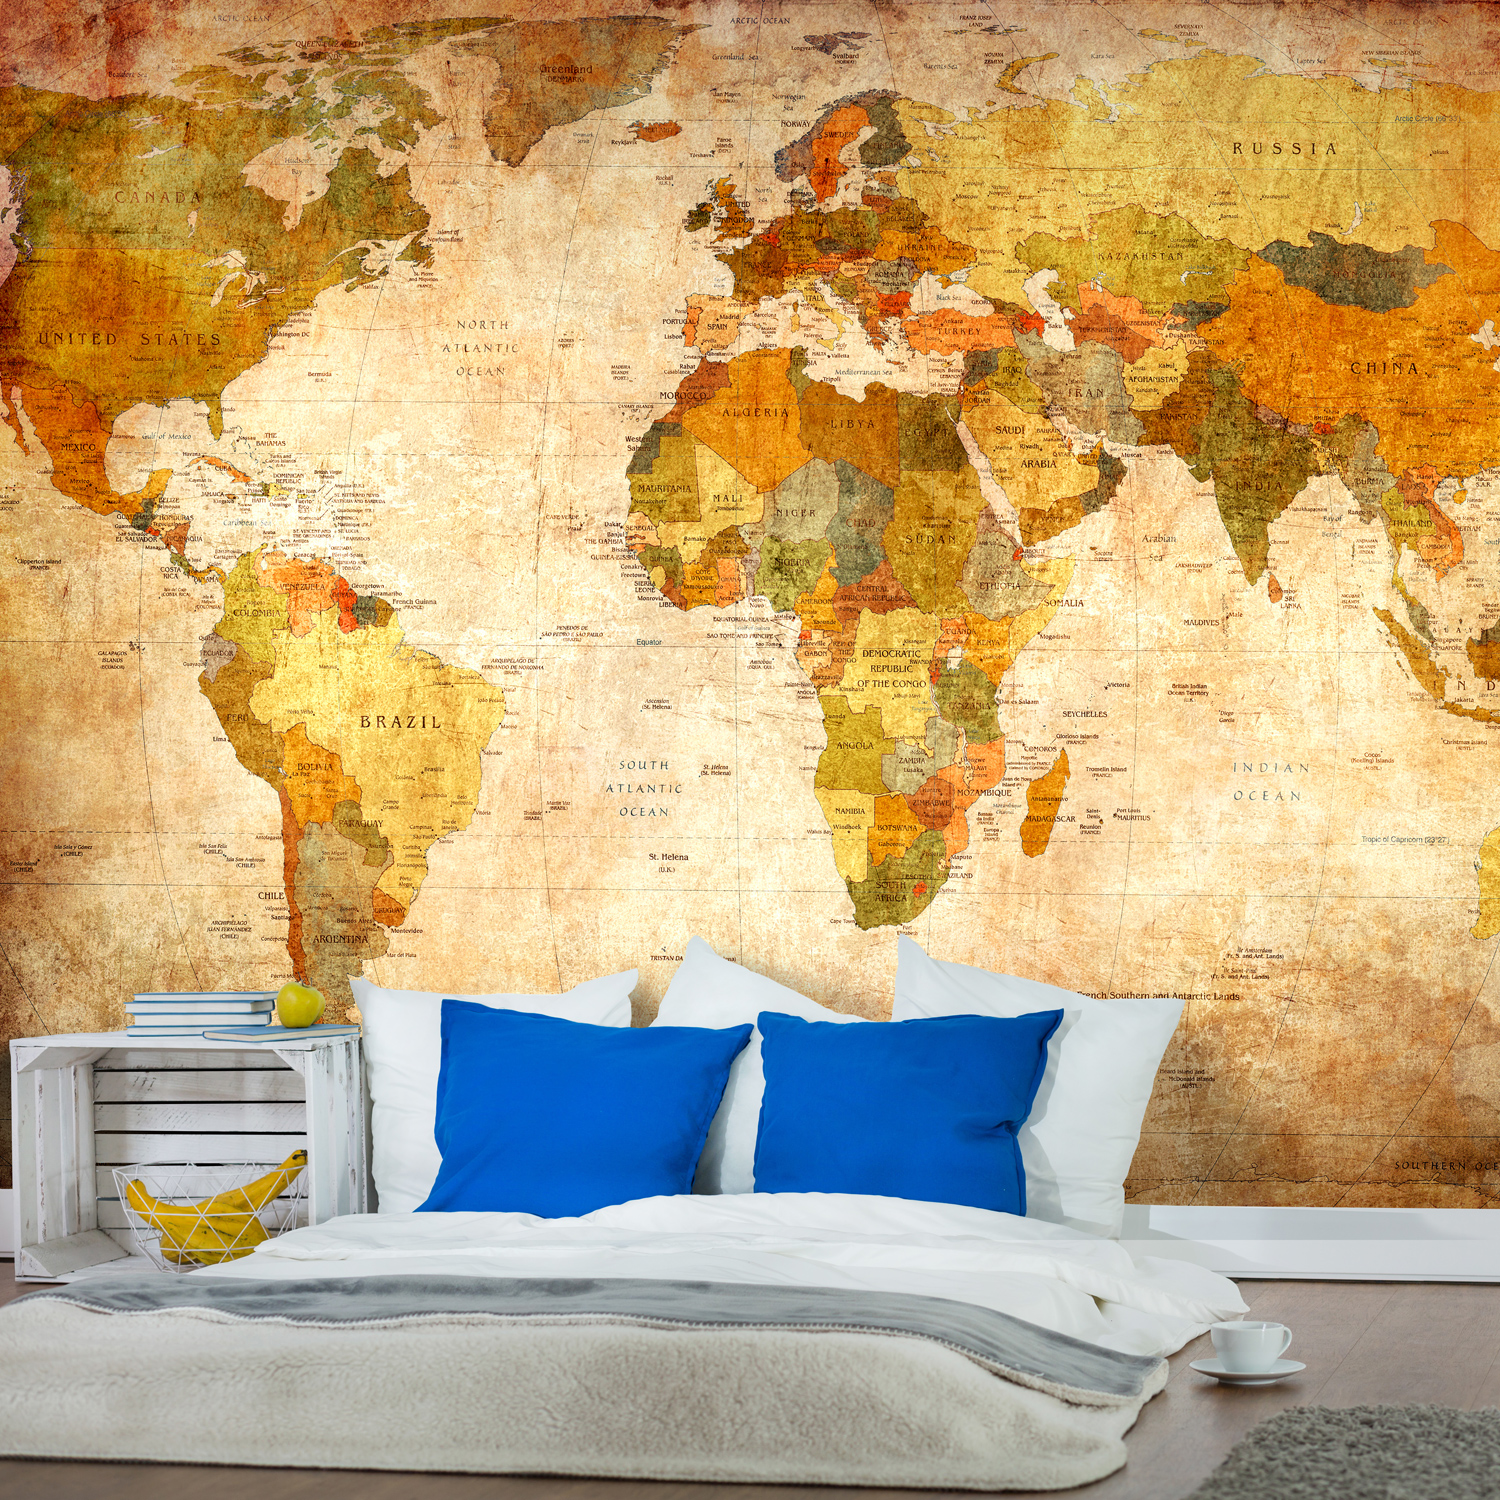 vlies fototapete weltkarte landkarte vintage retr antik welt map tapete wandbild ebay. Black Bedroom Furniture Sets. Home Design Ideas